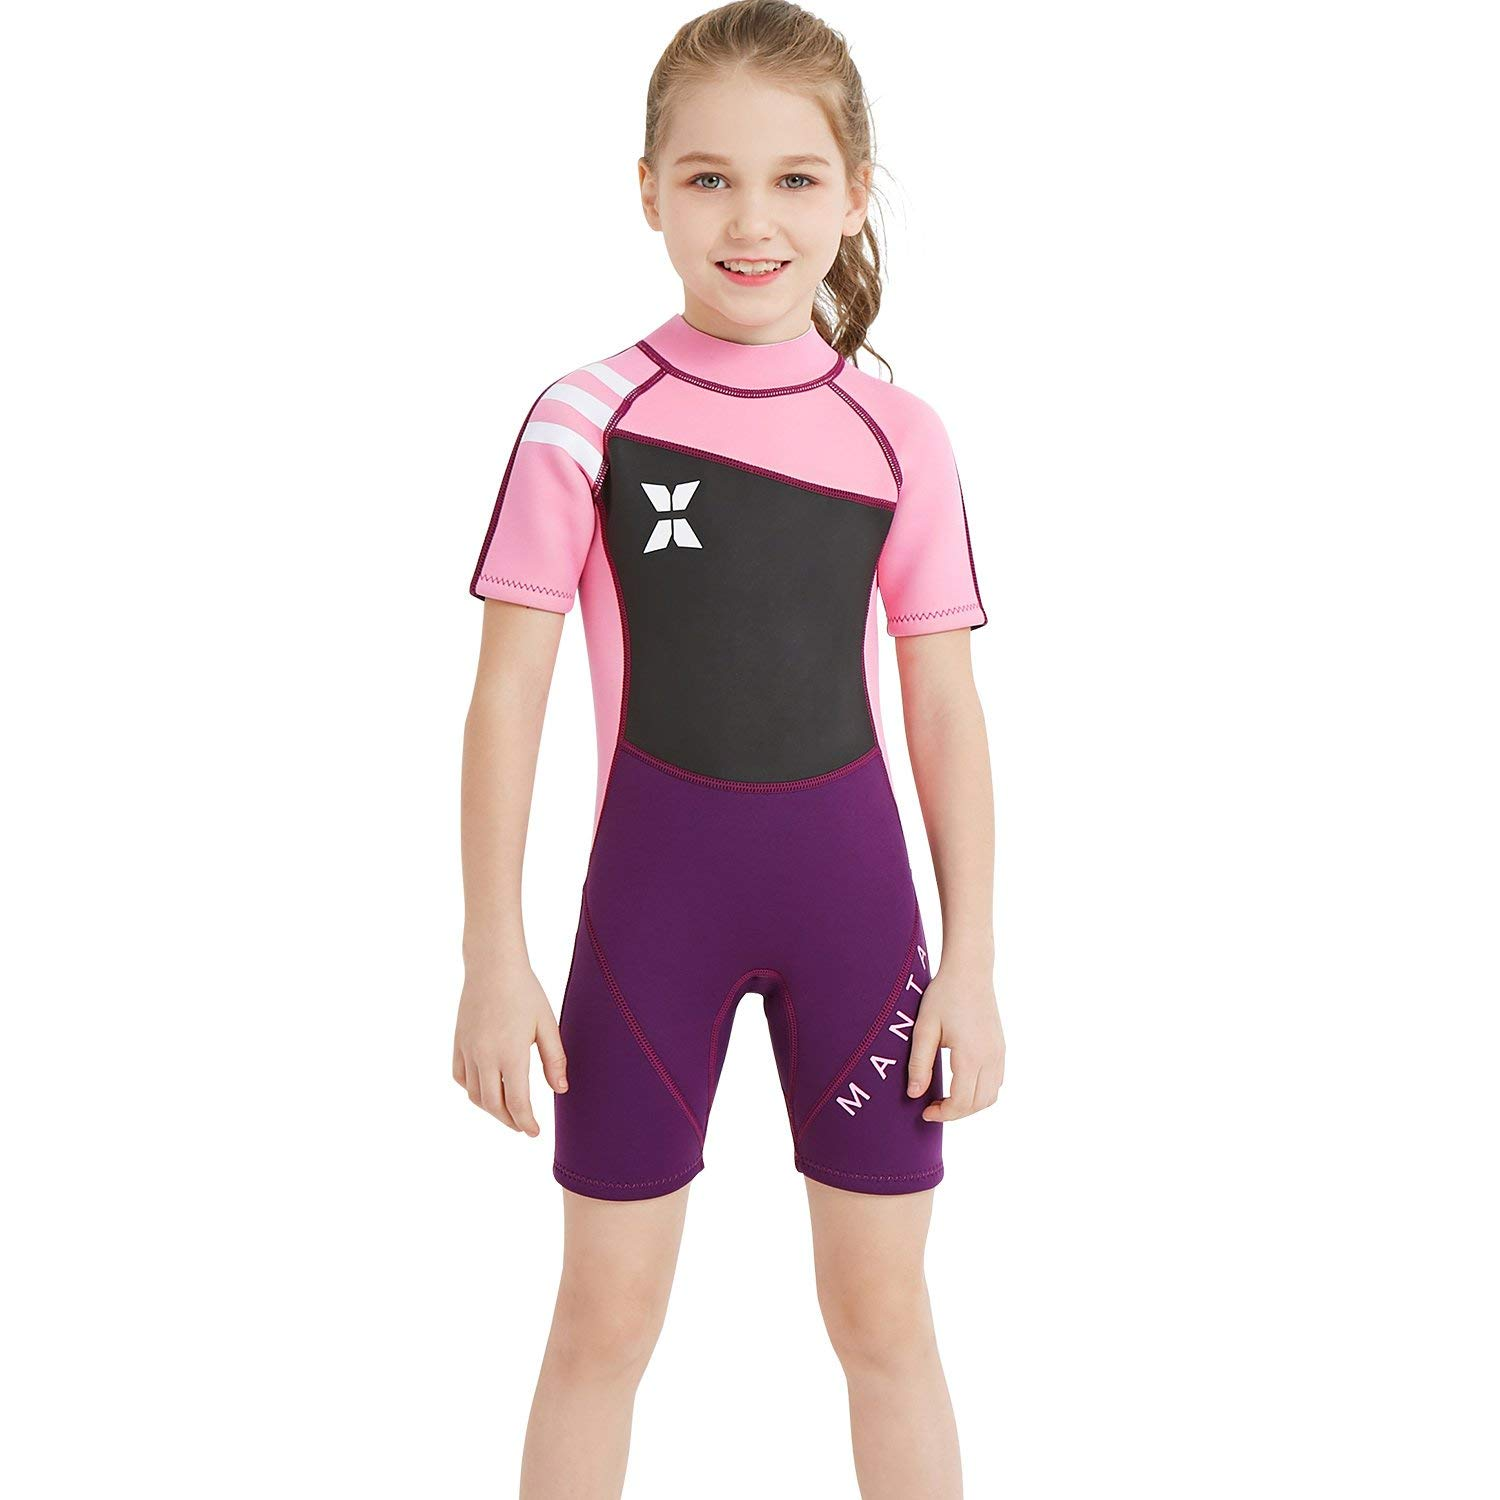 Dark Lightning Kids Wetsuit, 2mm Diving Shorty Wet Suit for Swimming/Diving/Snorkeling/Surfing, Keep Warm for Todders and Childrens by Dark Lightning